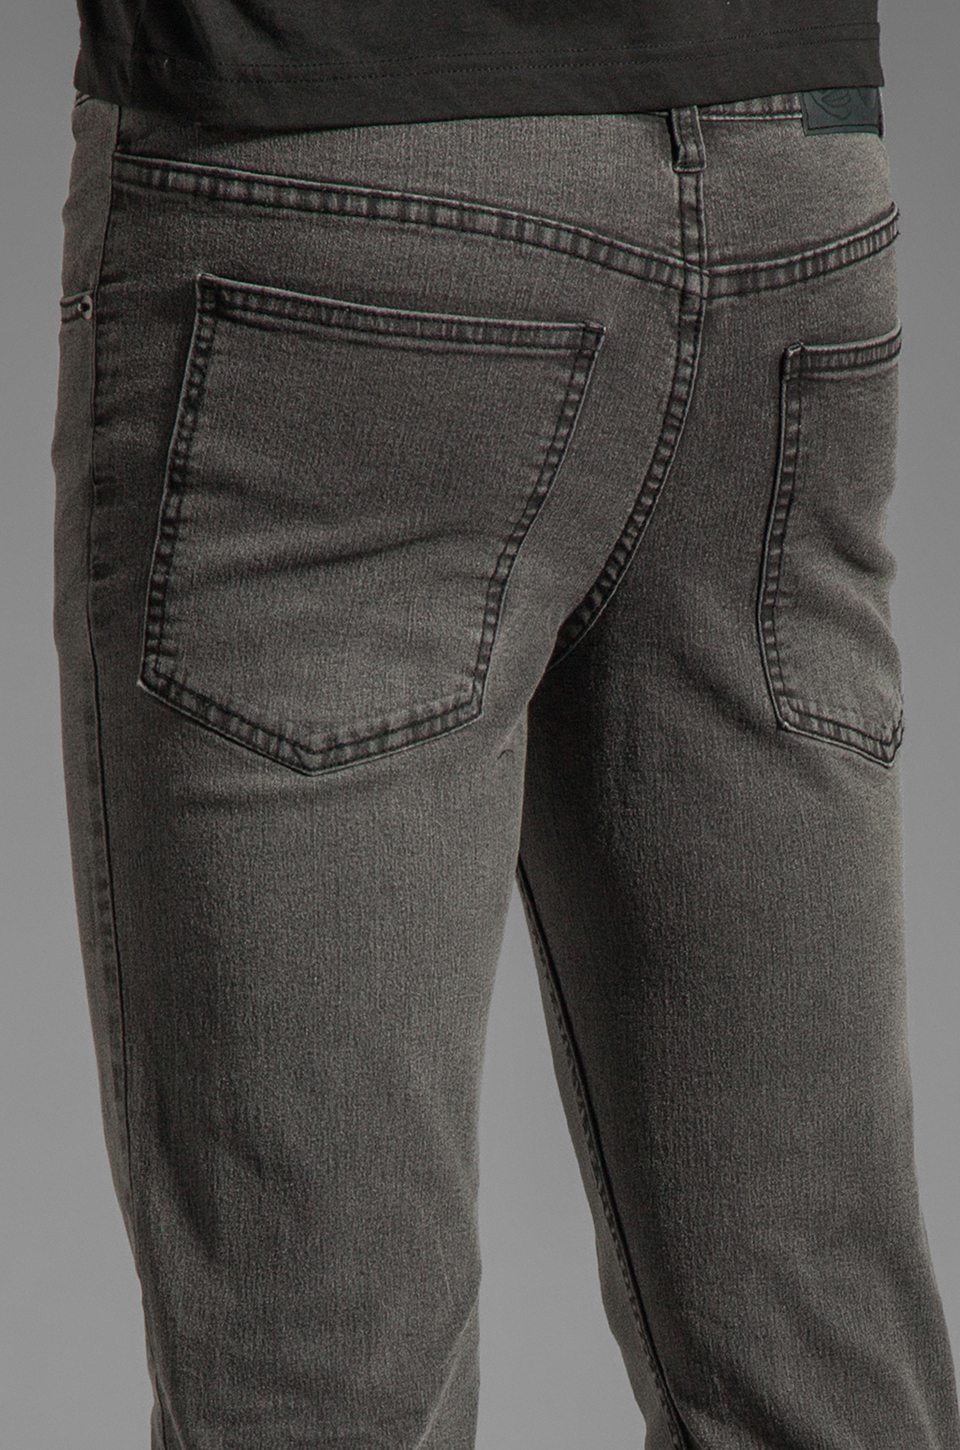 Lyst Cheap Monday Tight Jeans In Gray For Men